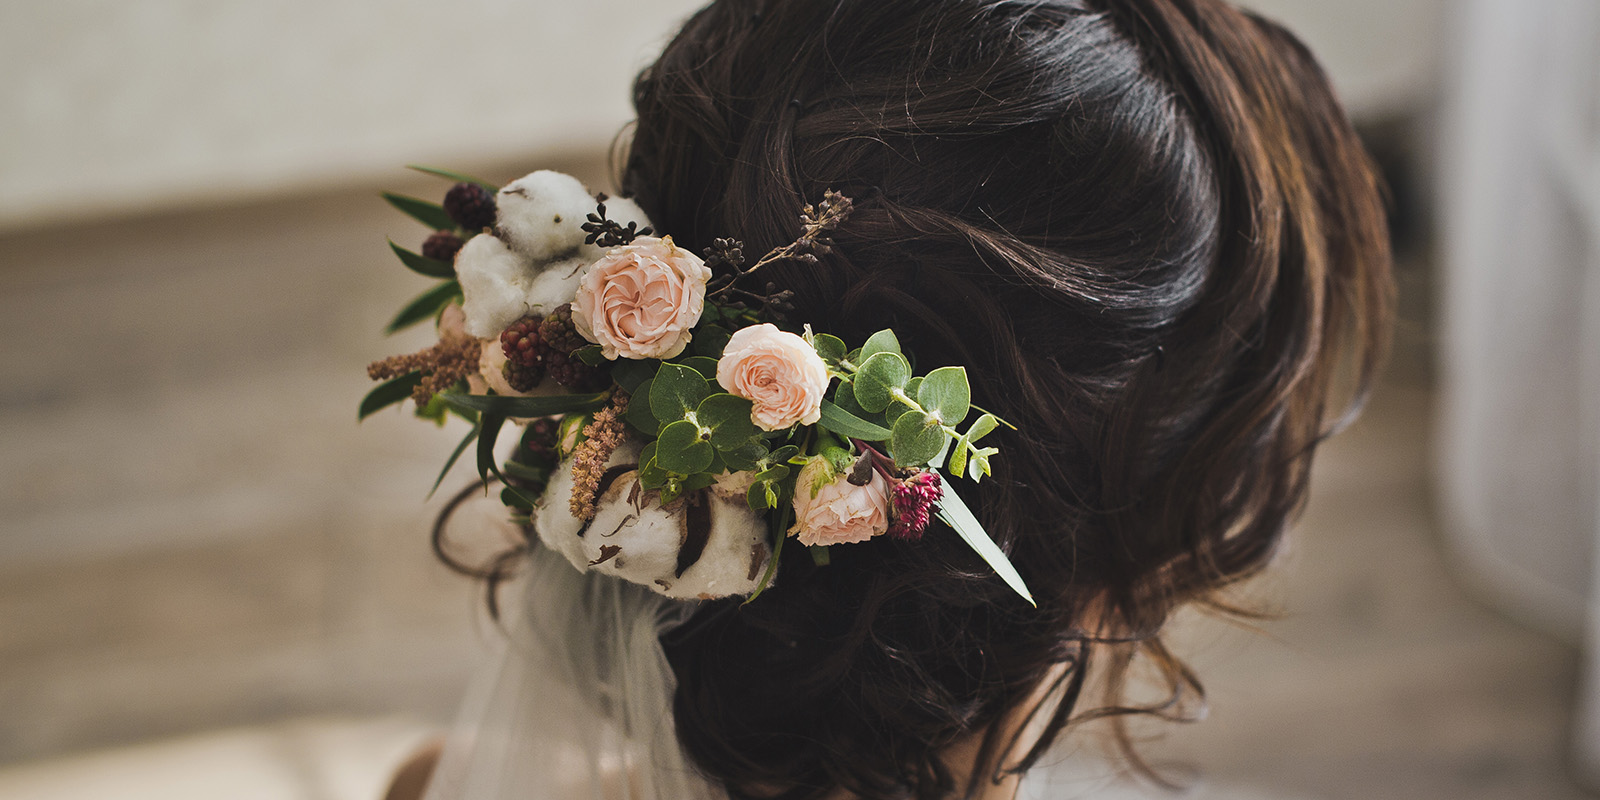 Spa hair, manicure, updo for wedding day, at Vitality Medi-Spa Halifax NS